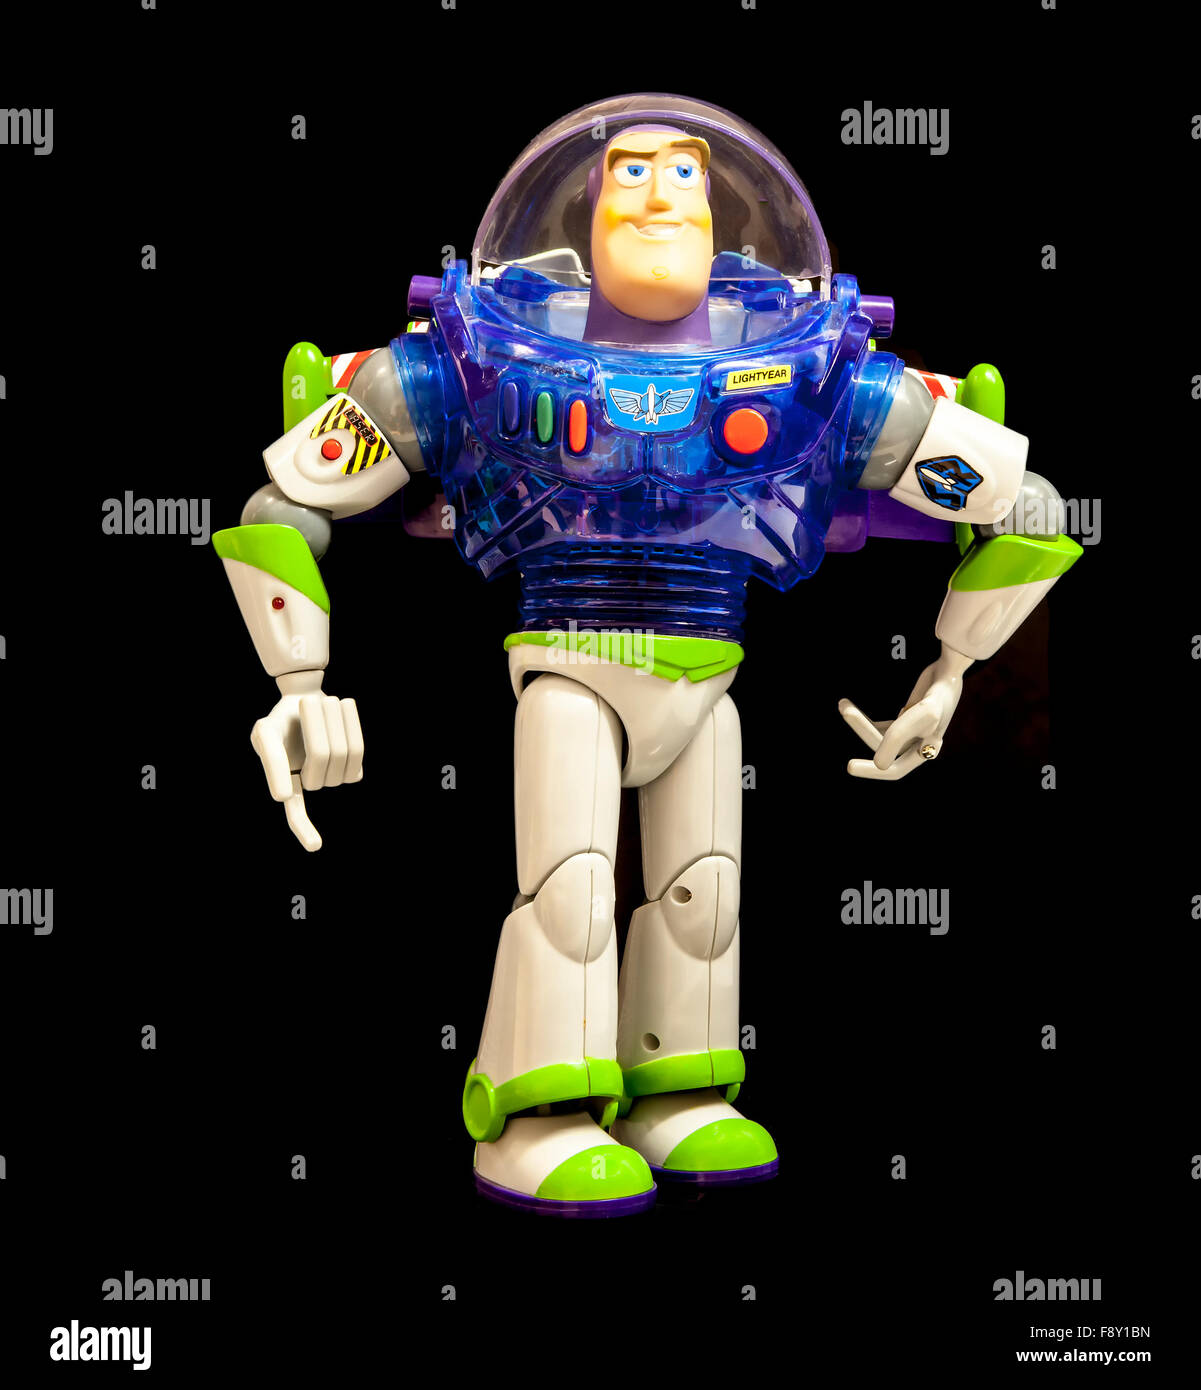 Buzz Lightyear from Disney's Toy Story 2 on a Black Background - Stock Image